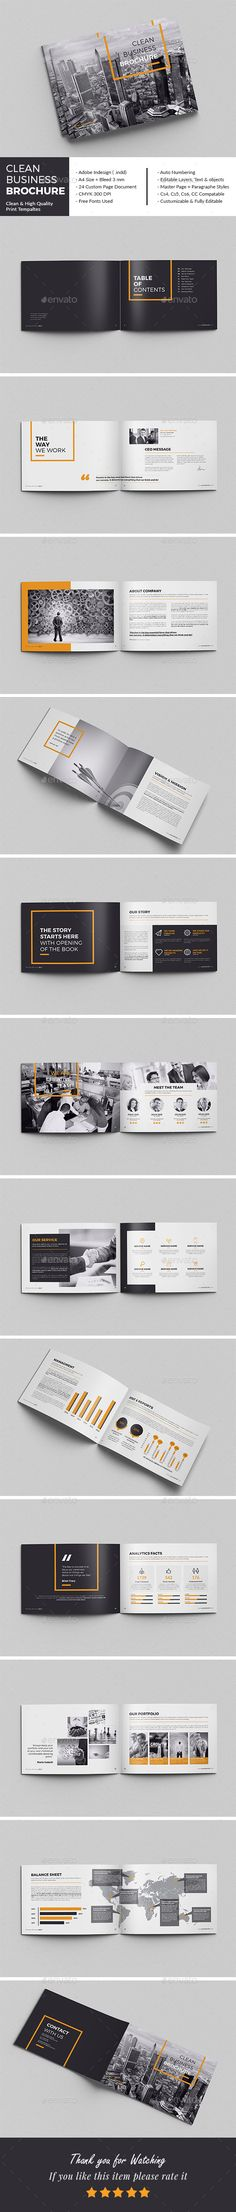 Clean Business BrochureThis InDesign Brochure is Clean & Porfessional. Create your company's documentation quick and easy. The template comes with paragraph and character styles, swatches, styles for your spreadsheet / financial info, block quotes, key …